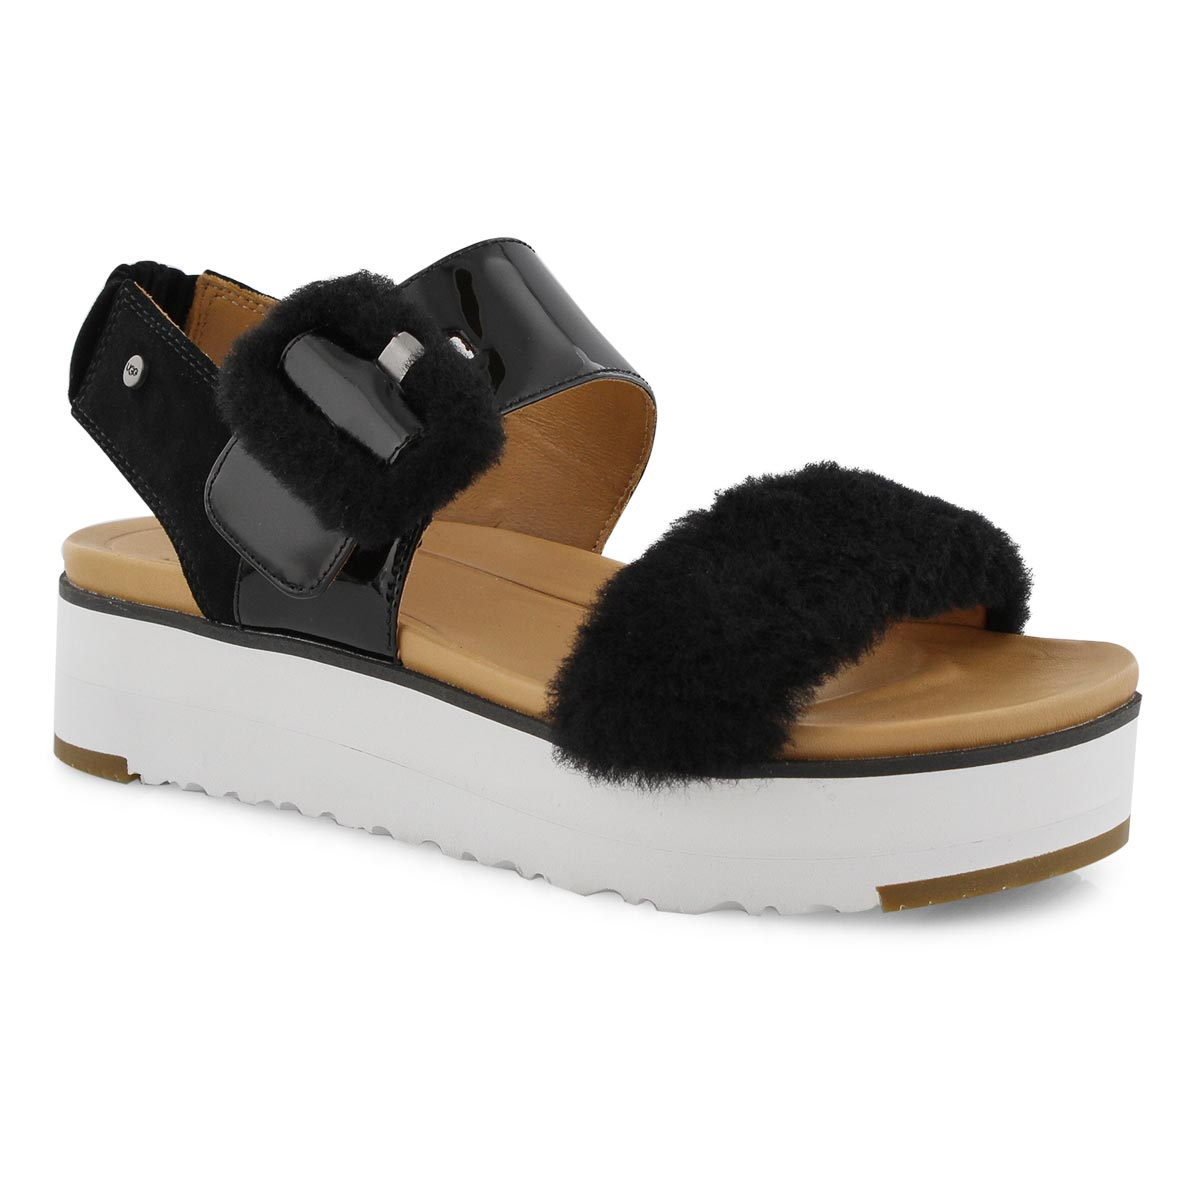 29bf4fc2dd3 UGG Women's LE FLUFF black casual sandals | Softmoc.com